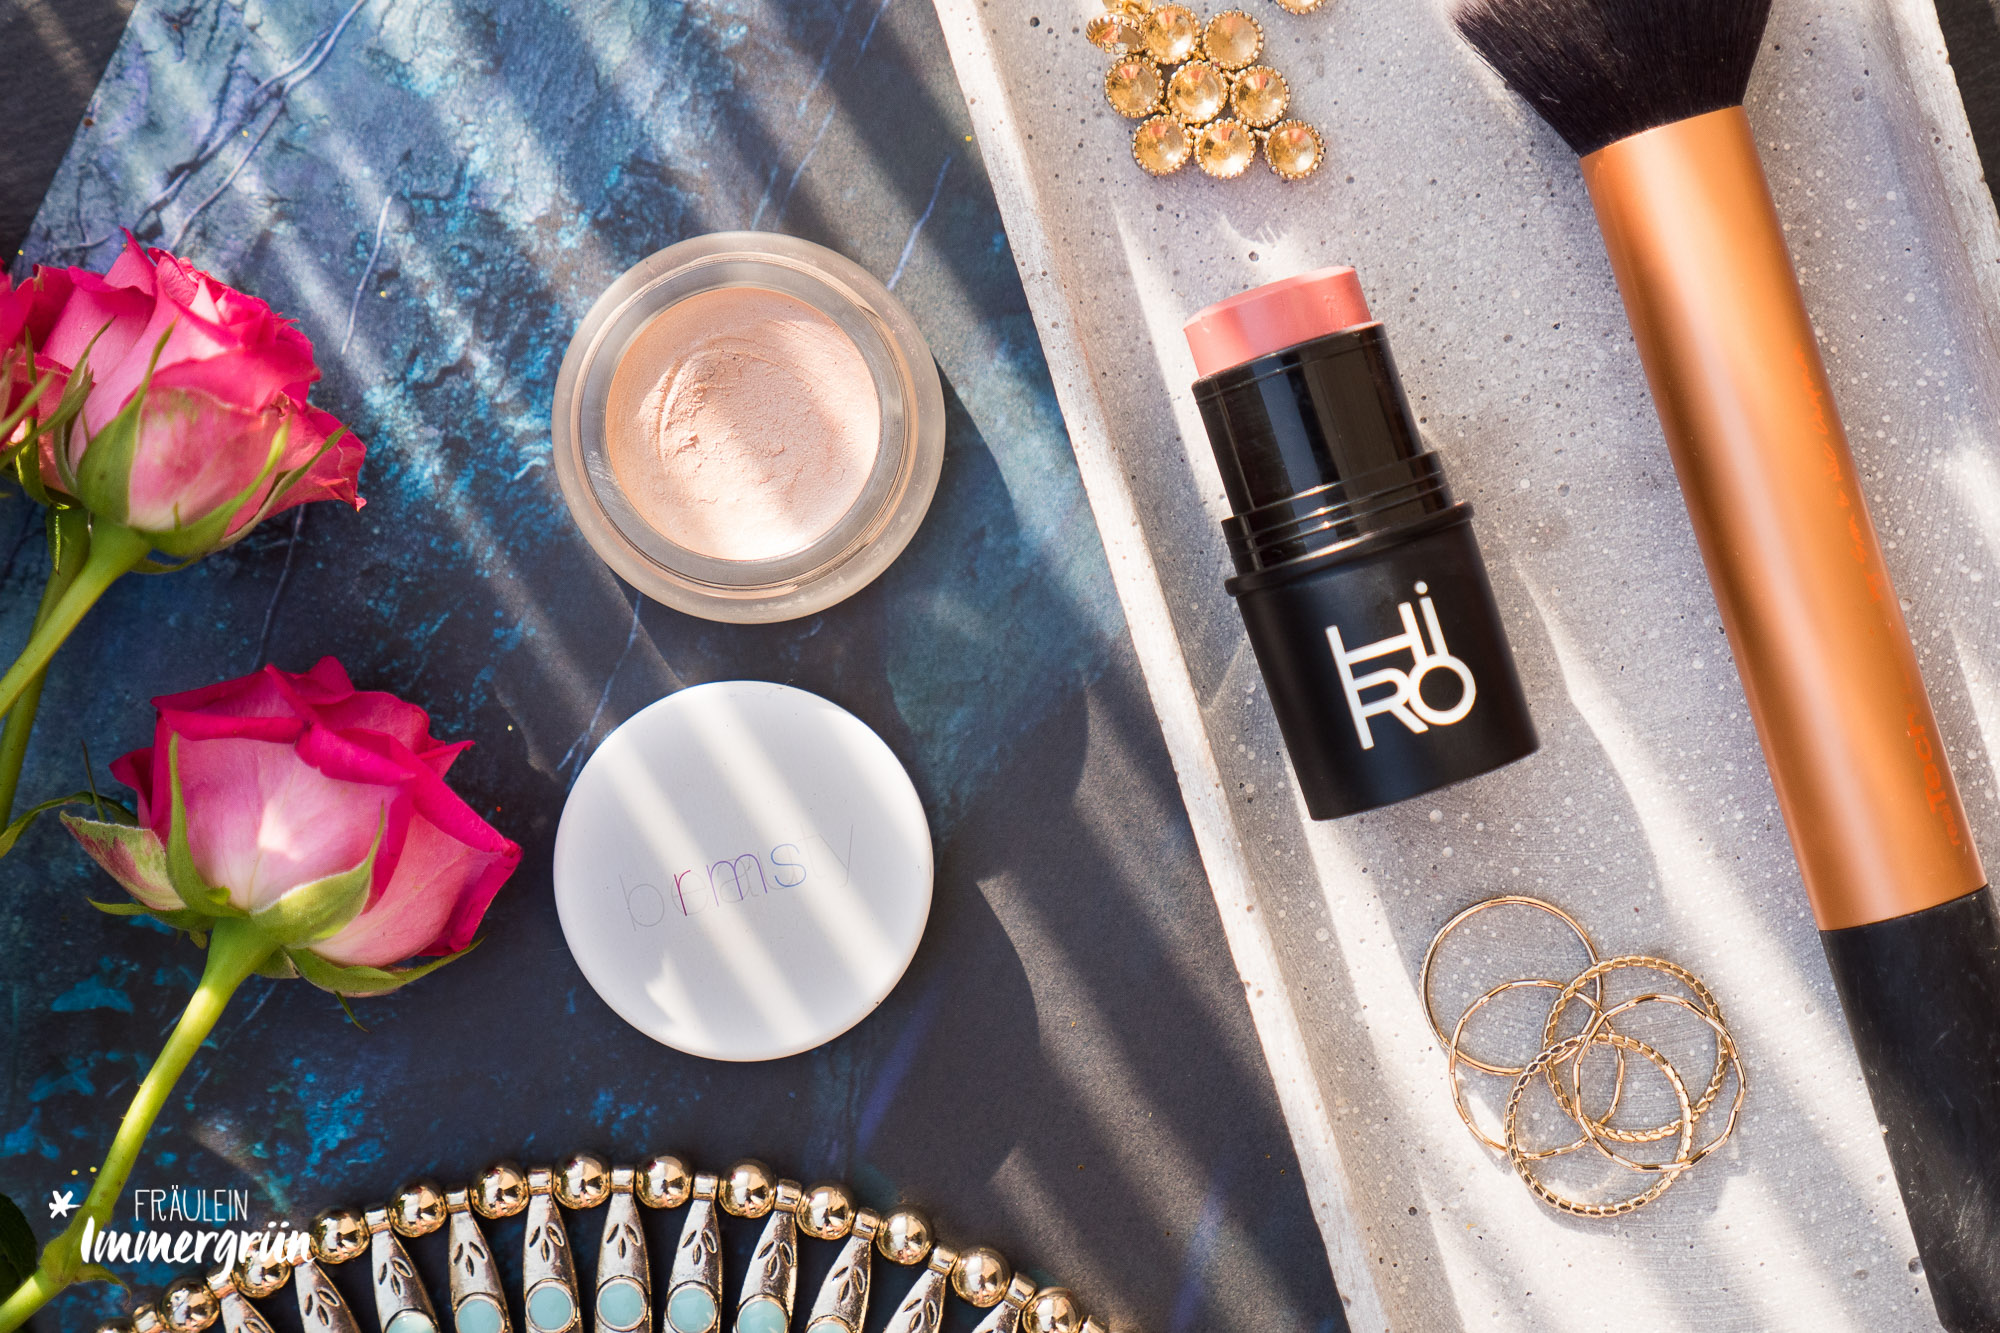 RMS Beauty Magic Luminizer / Hiro Multistick Backstage